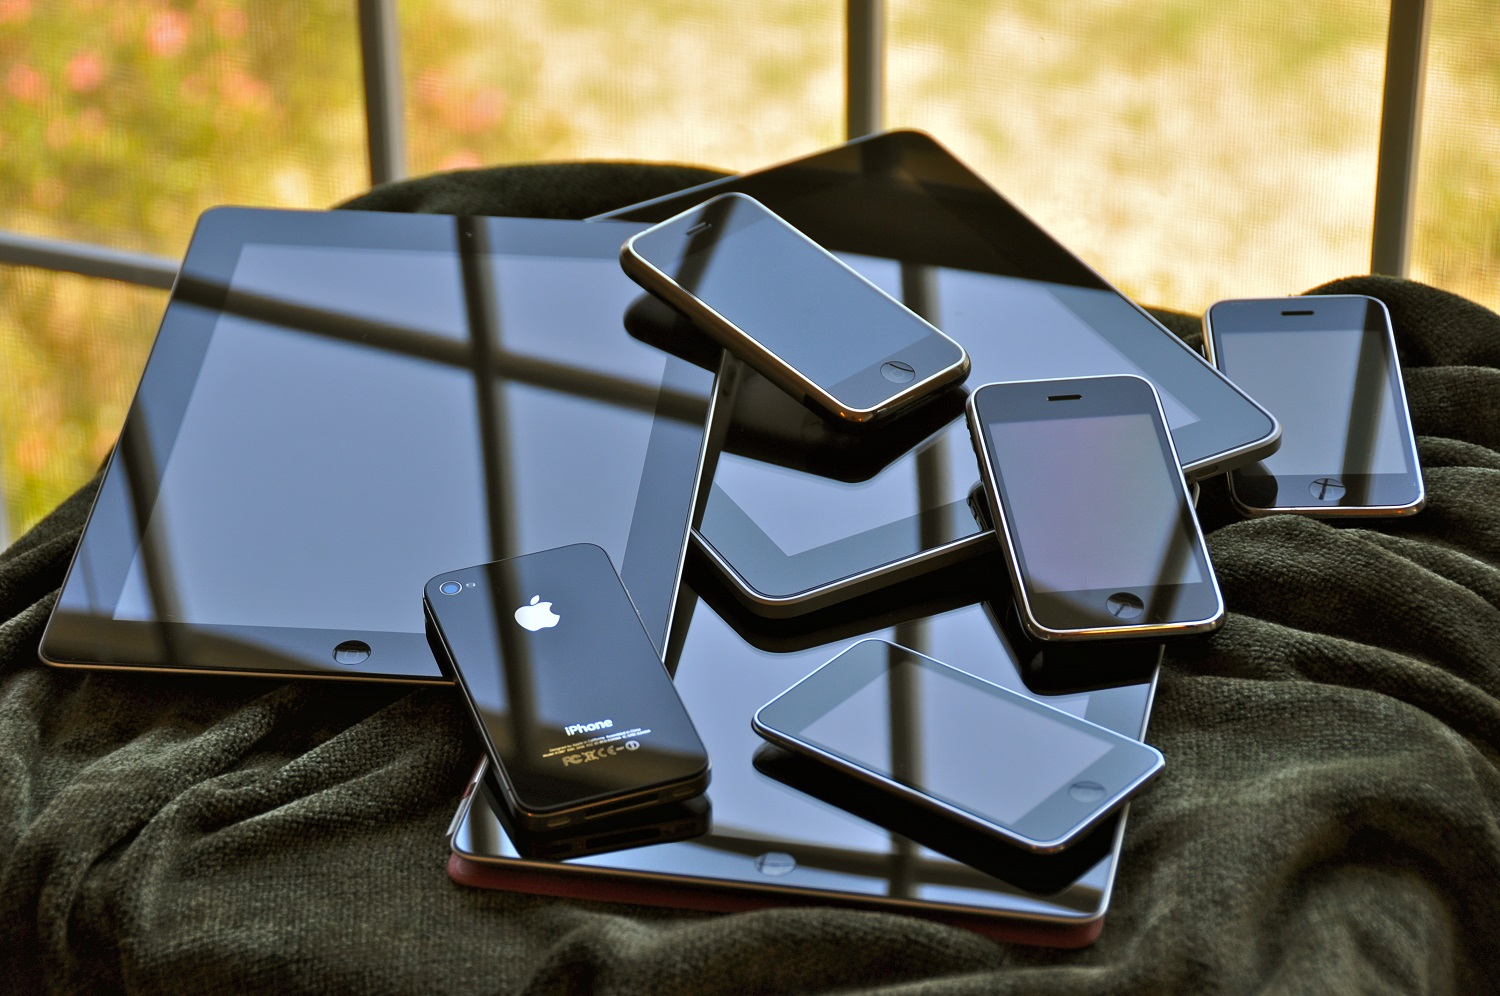 EU Proposal Would Create Confusion For Electronics Recyclers, ISRI Says